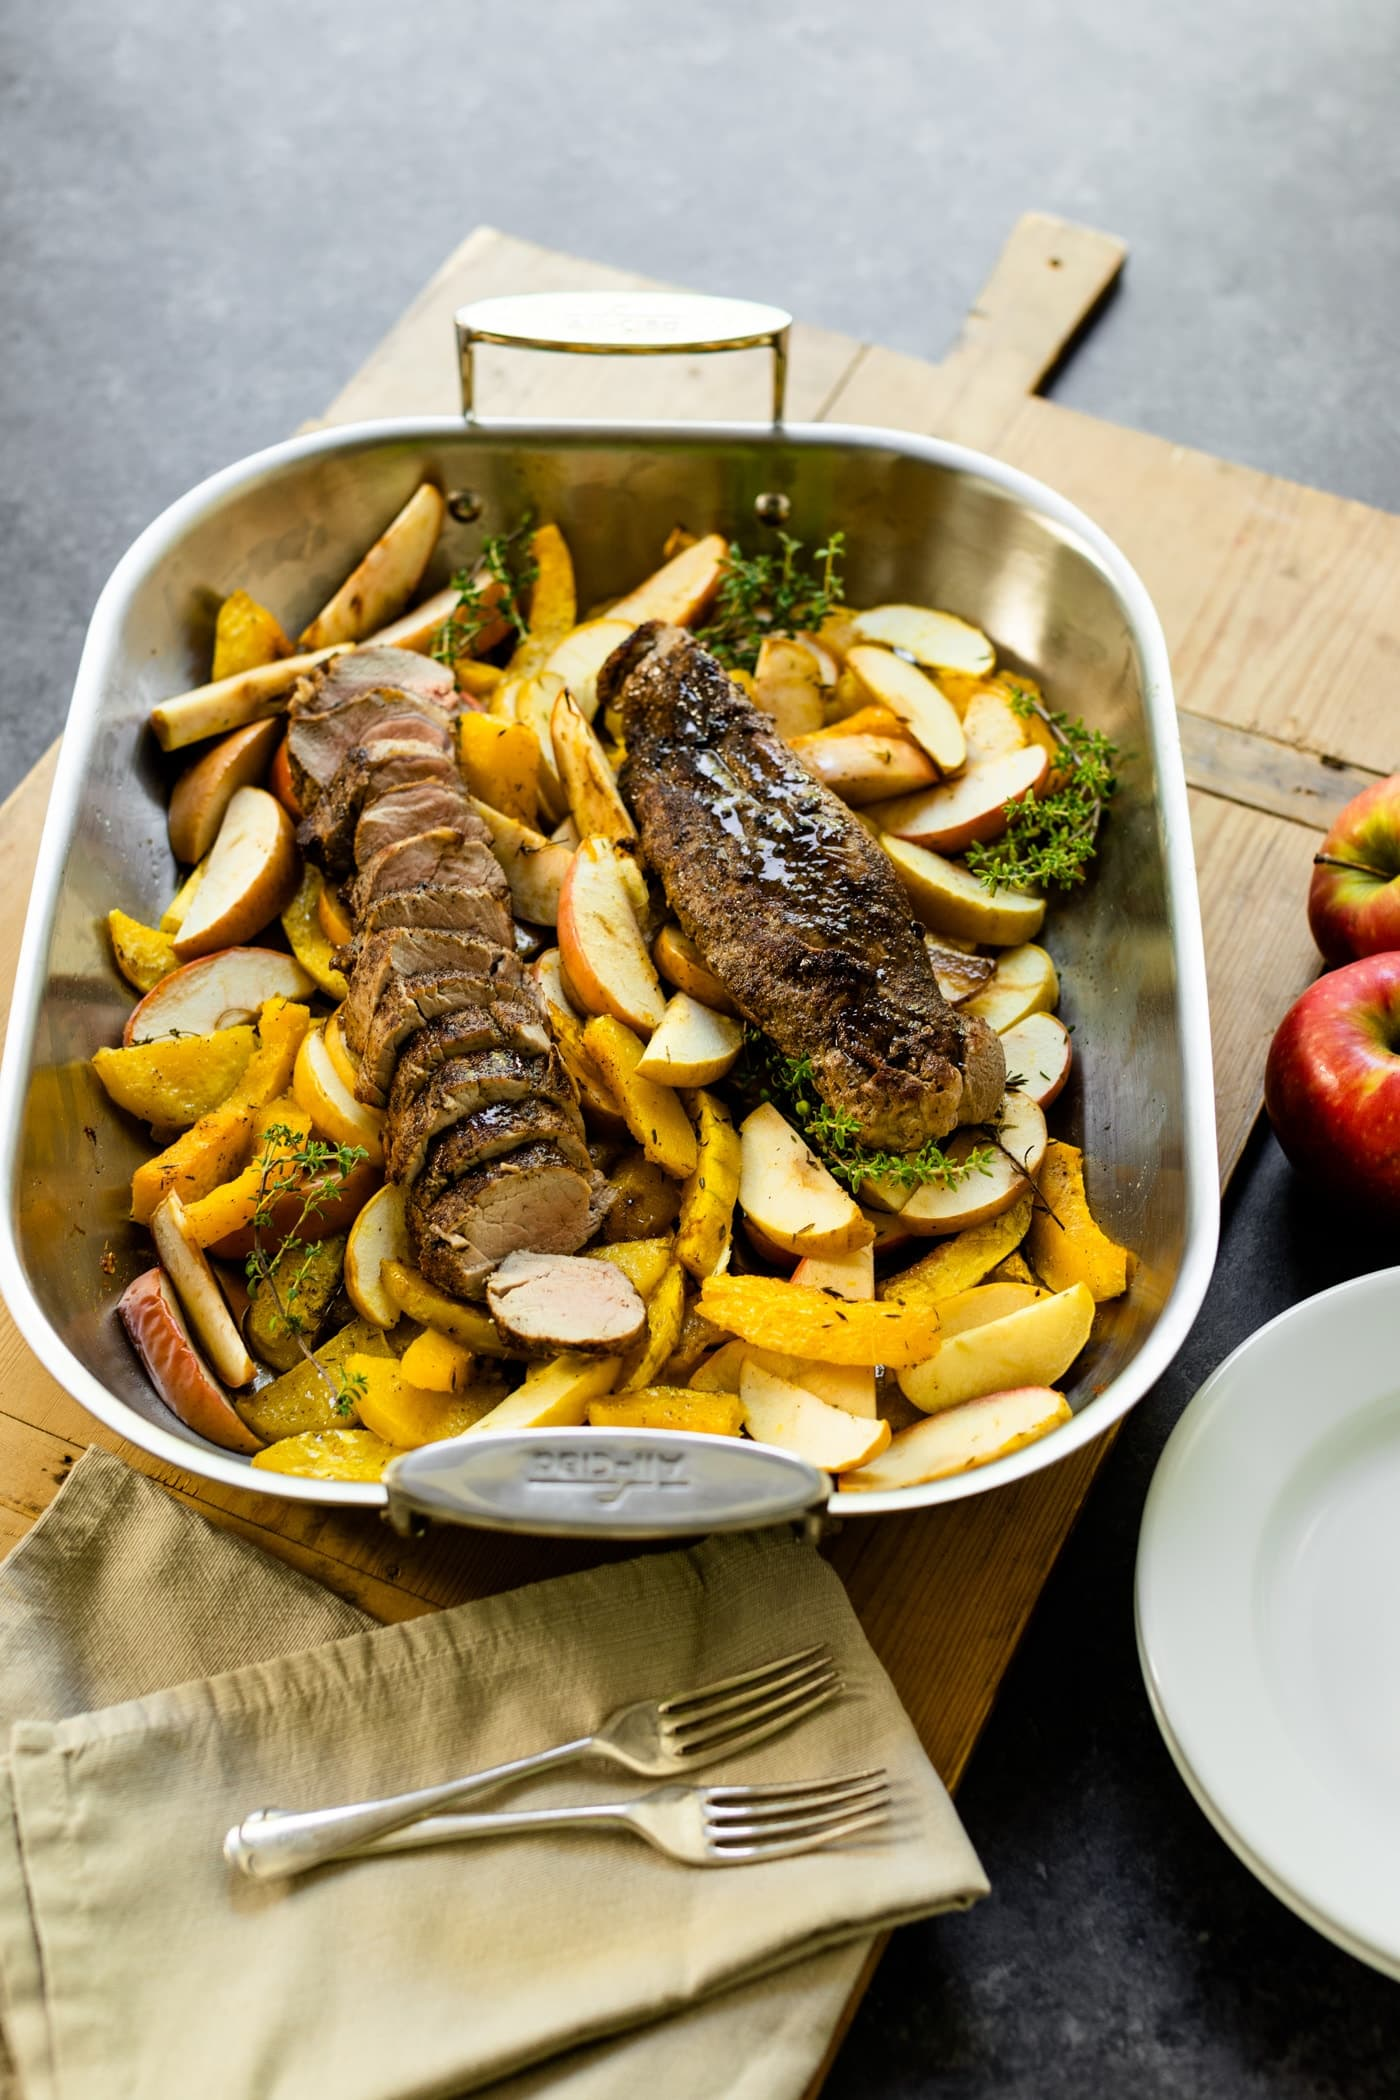 Pan full of roasted pork tenderloin sitting on bed of roasted apples and squash with wood board, plates, napkin and extra apples all on a gray slate surface